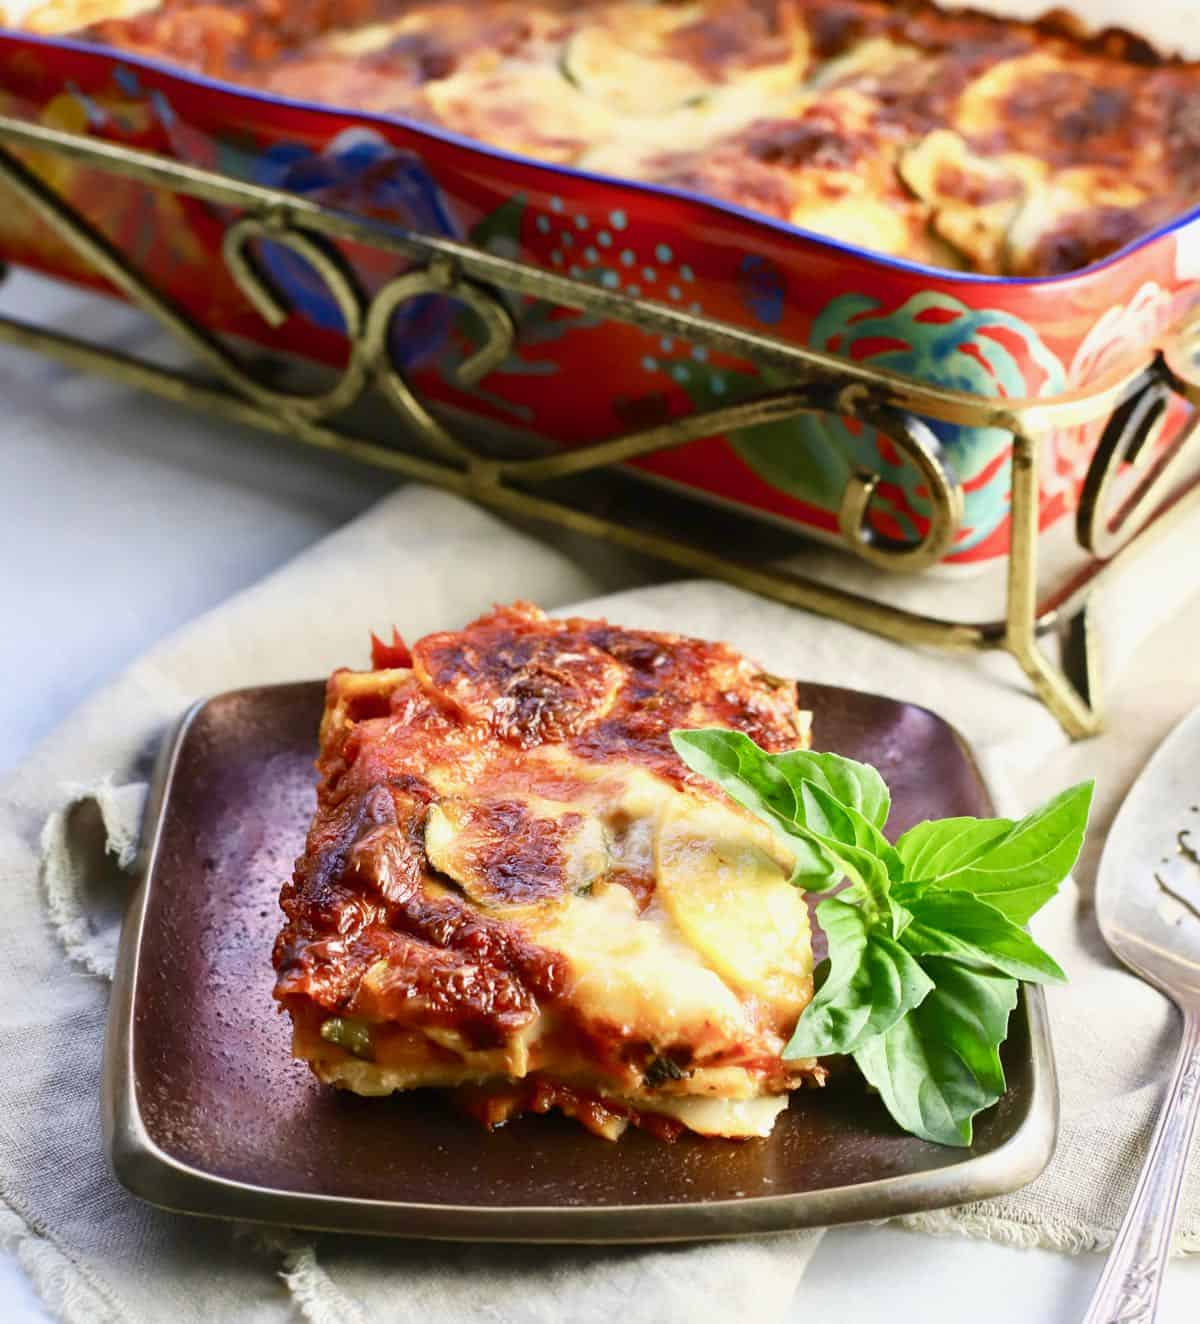 A serving of vegetable lasagna on a bronze plate.